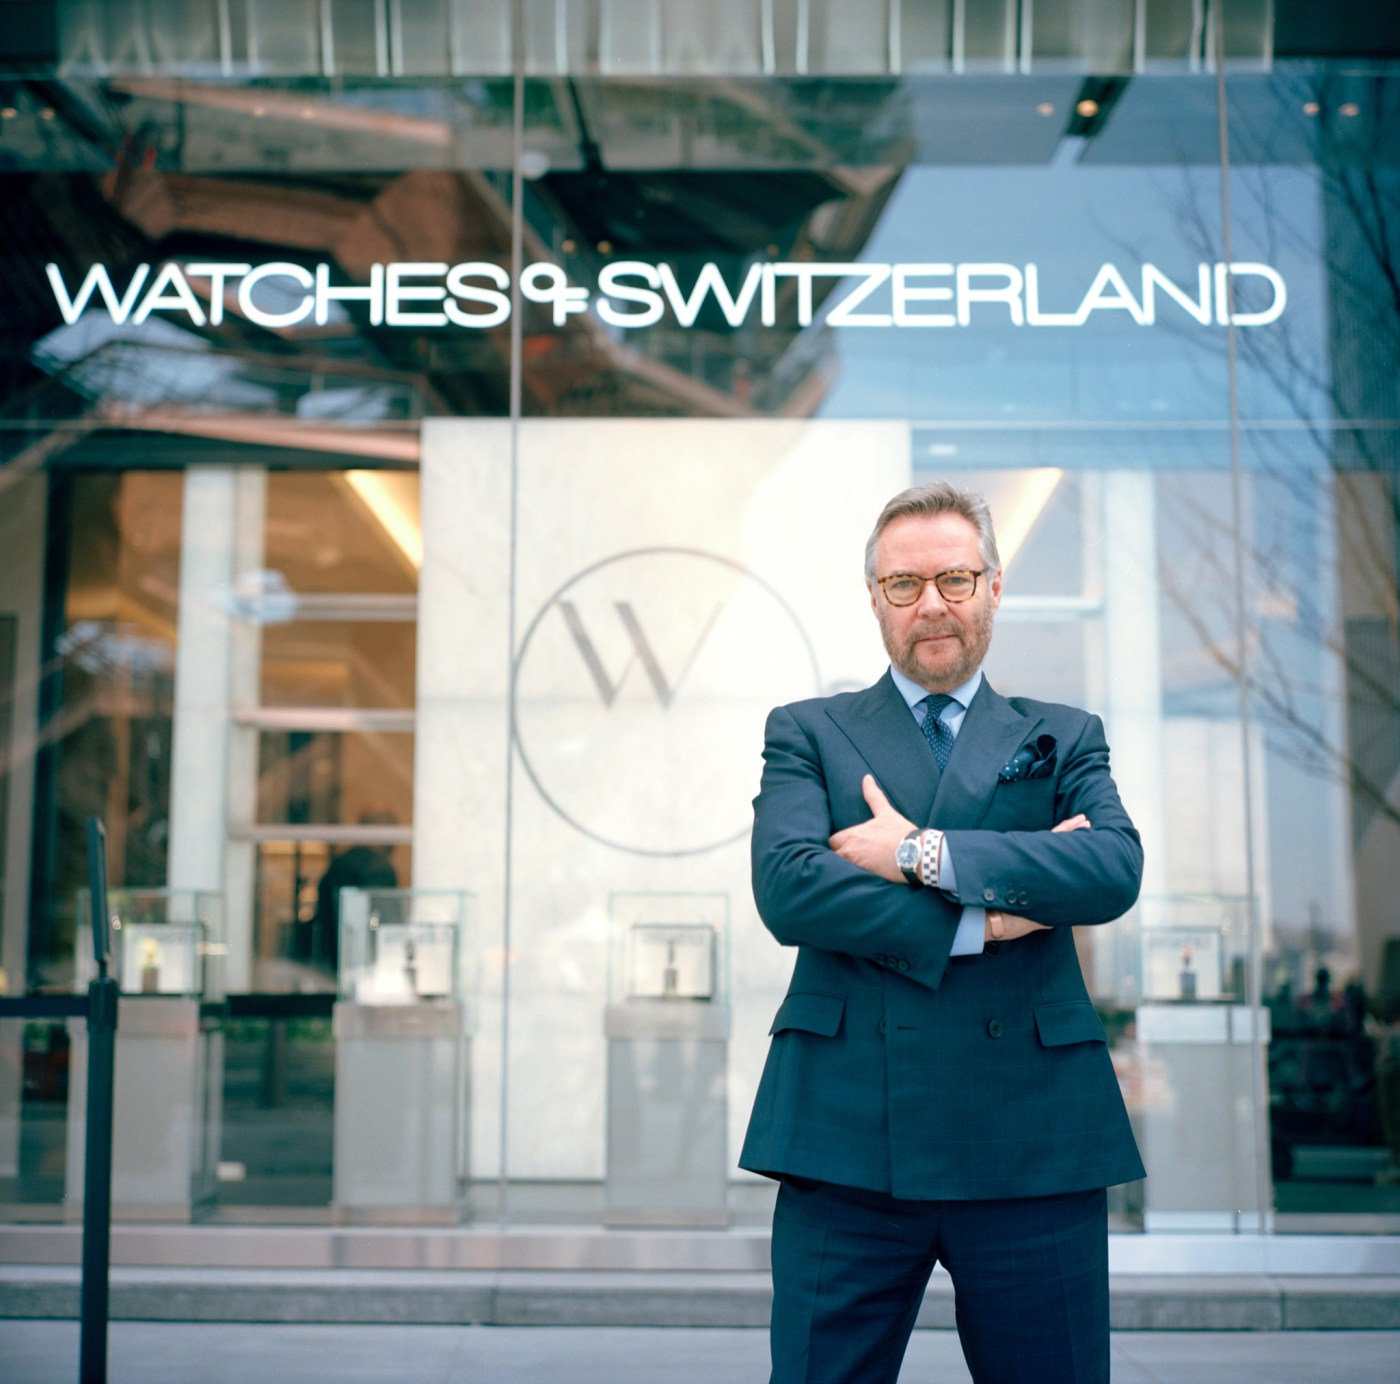 CEO the of Watches of Switzerland Group, Brian Duffy, outside of their new Hudson Yards flagship store